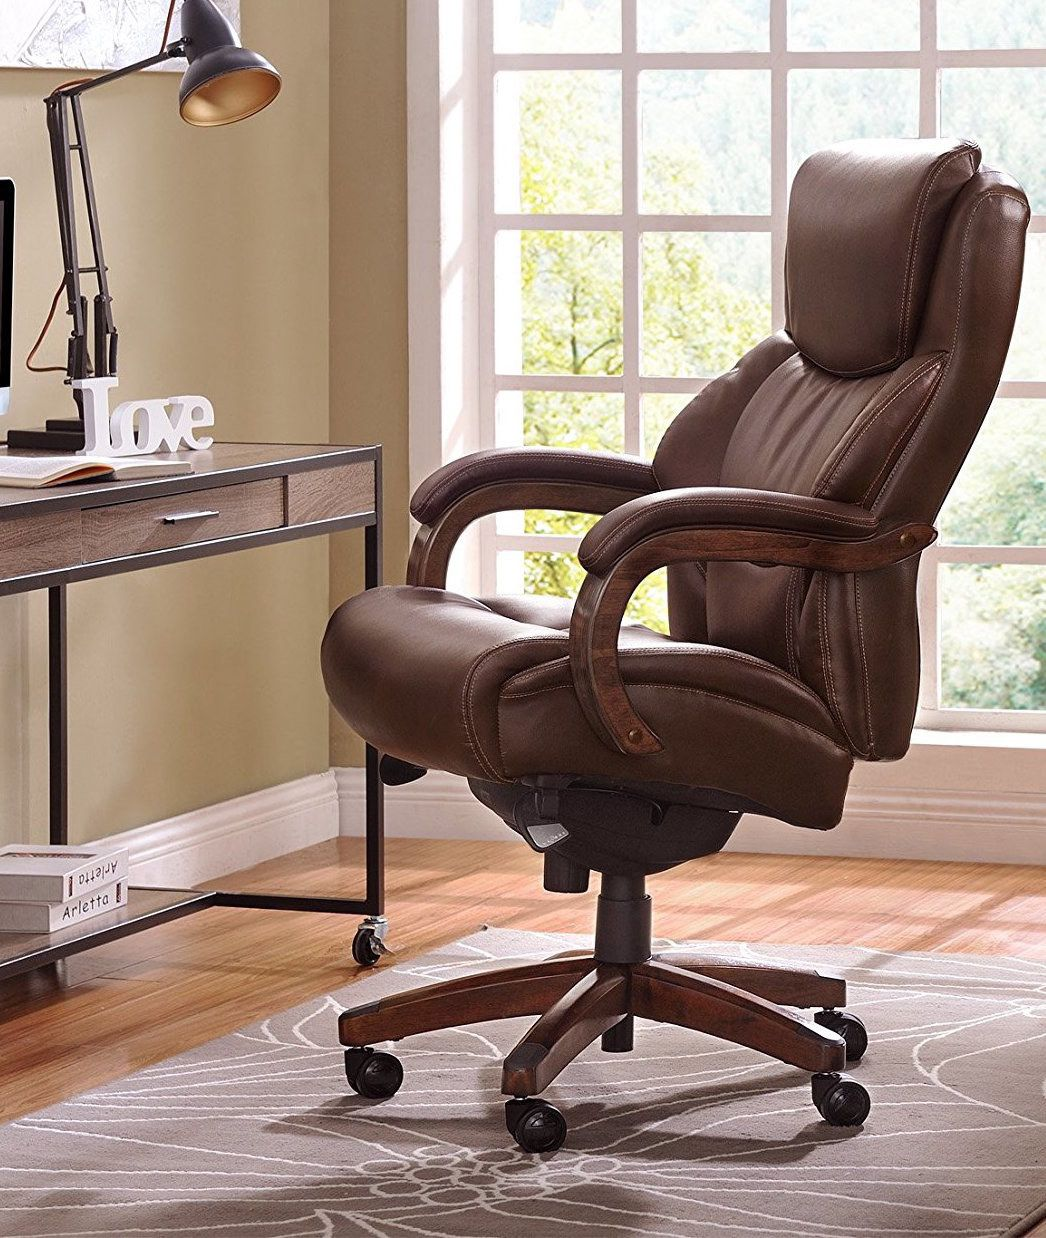 A LaZBoy chair that'll make you want to kick your feet